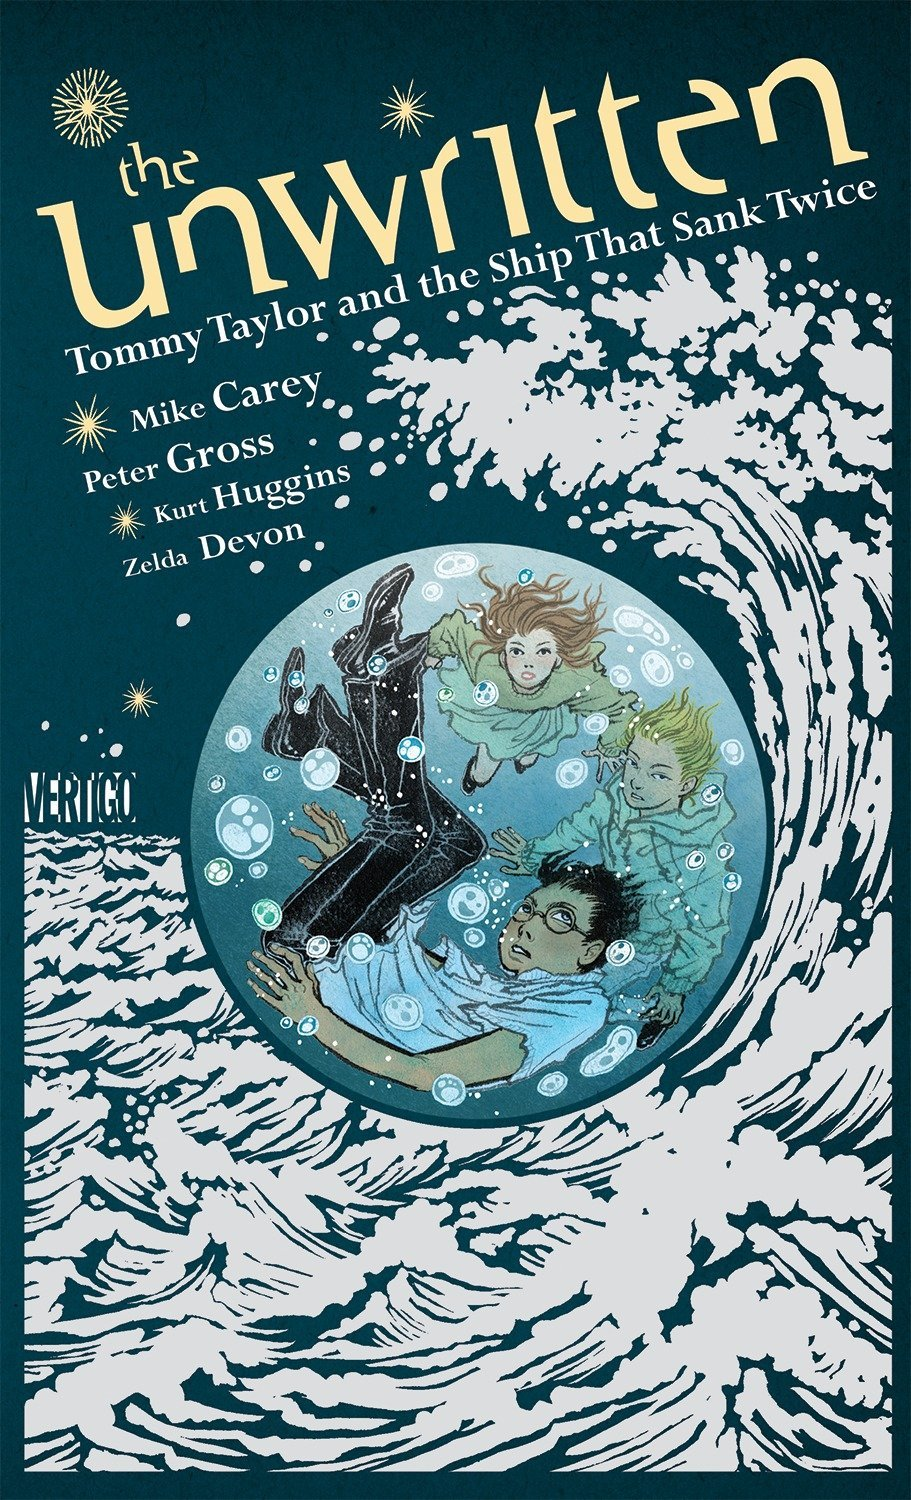 The Unwritten: Tommy Taylor and the Ship That Sank Twice PDF ePub ebook